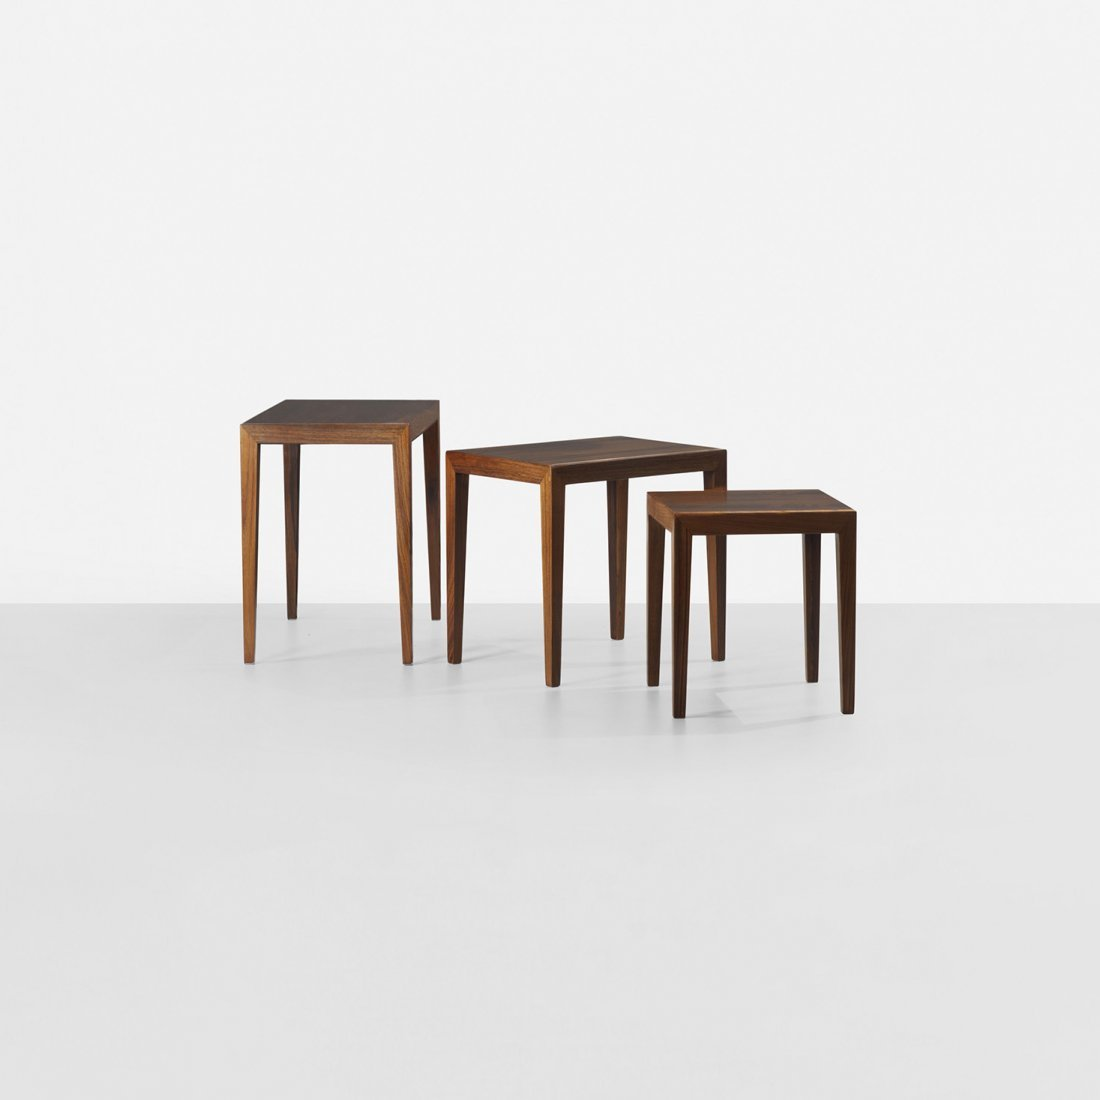 139: Ole Wanscher nesting tables, set of three